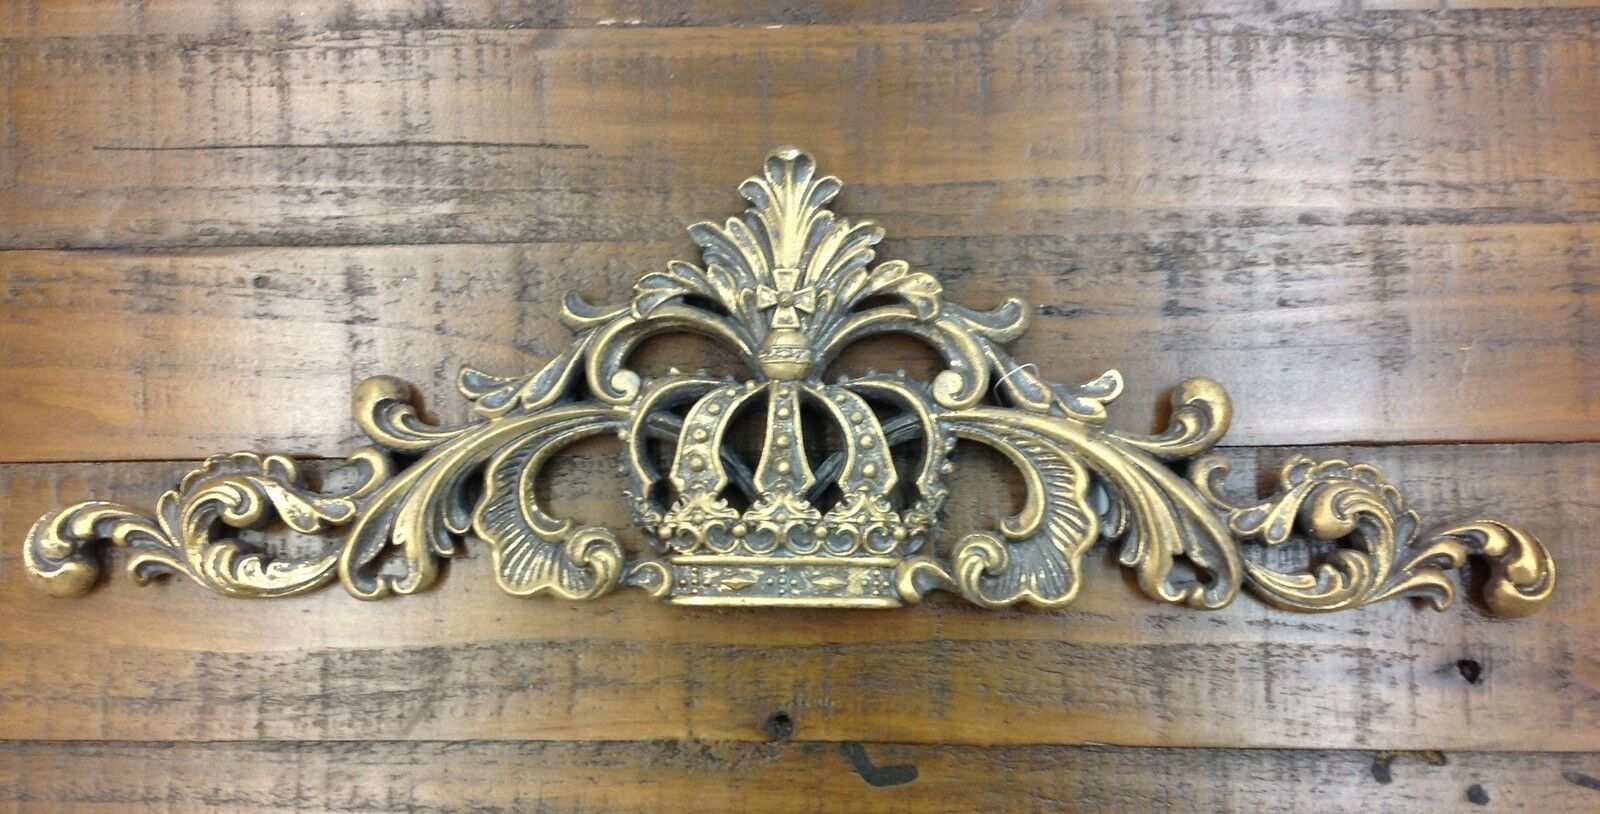 Italian gold princess crown scrolling wall decor hanging for Victorian wall decor